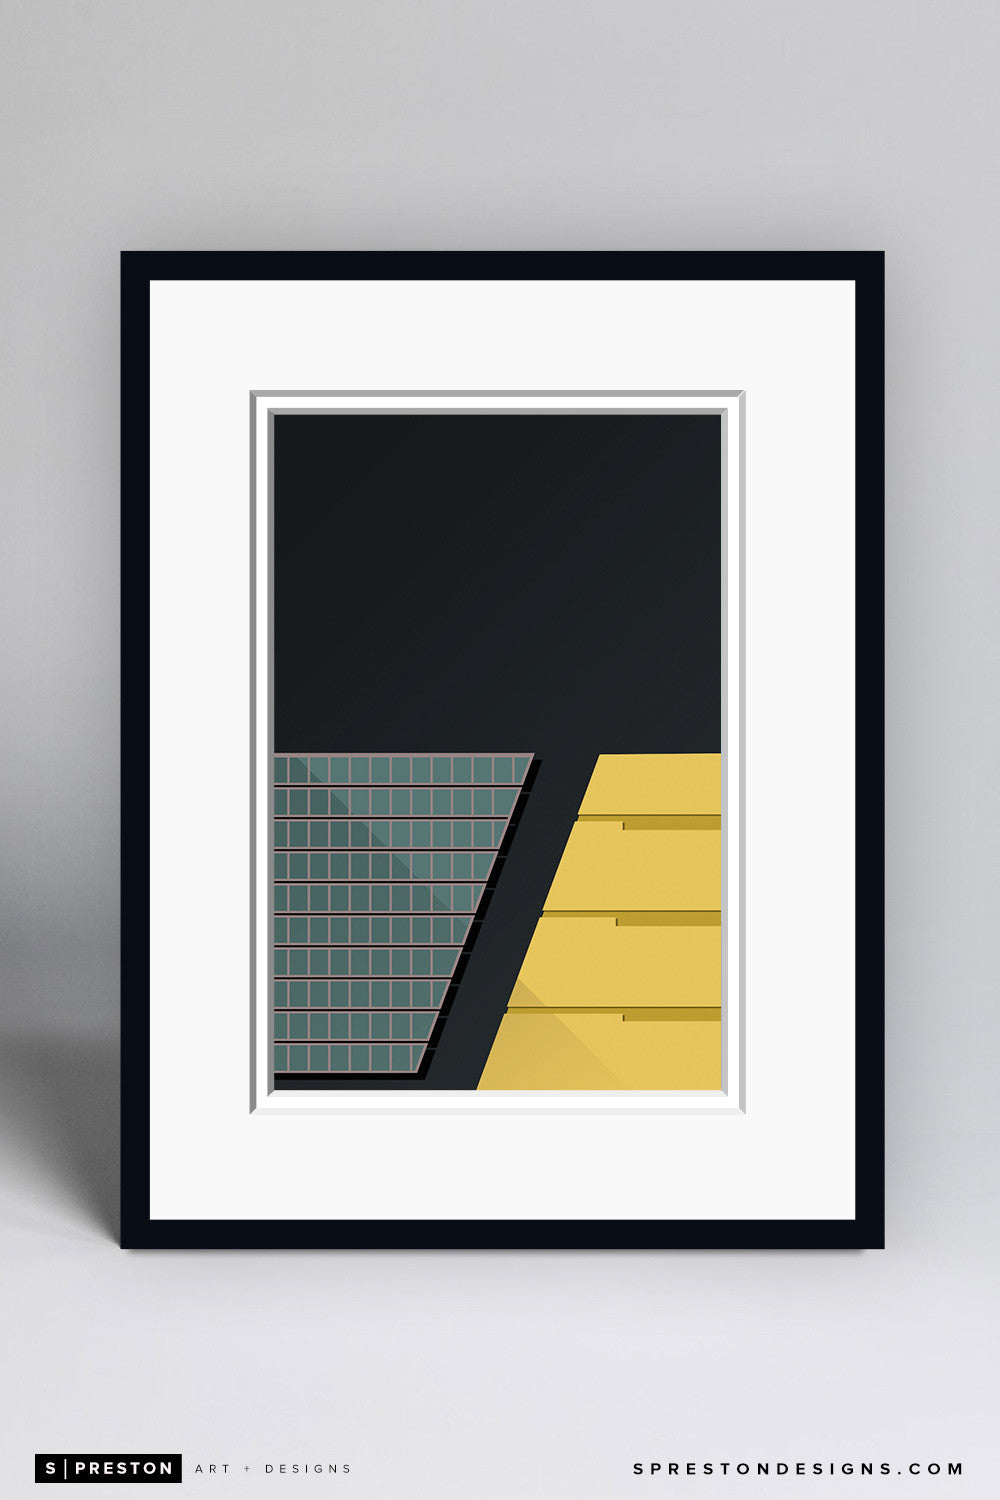 Minimalist Paul Brown Stadium - Cincinnati Bengals - S. Preston